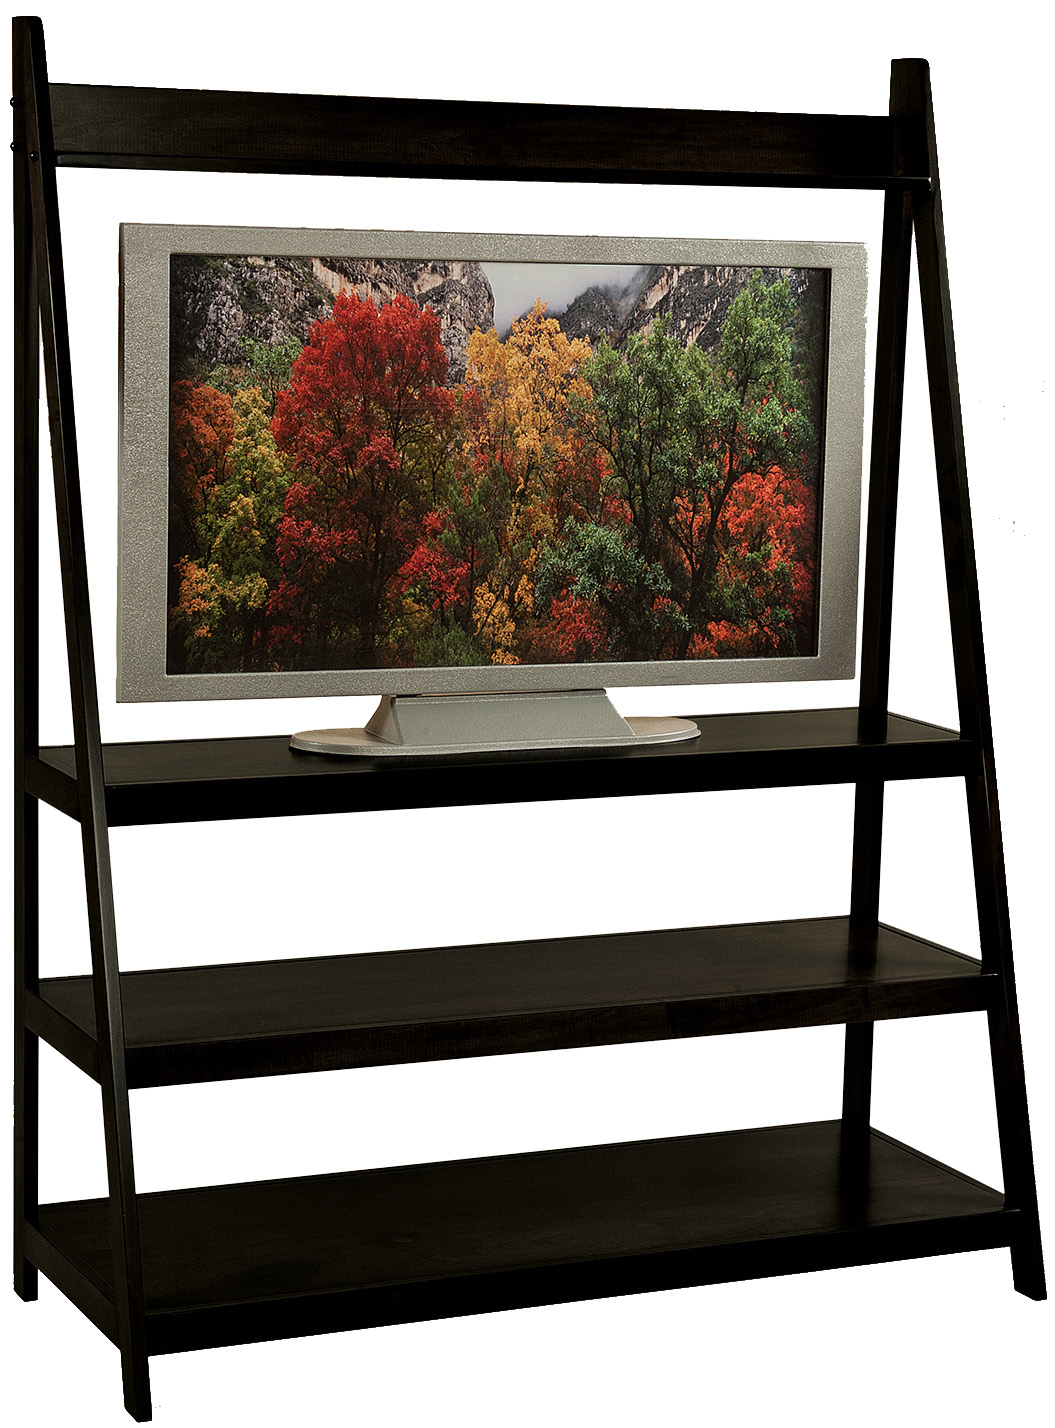 Ladder TV Stand Ladder TV Solid Wood Stand Ladder Entertainment